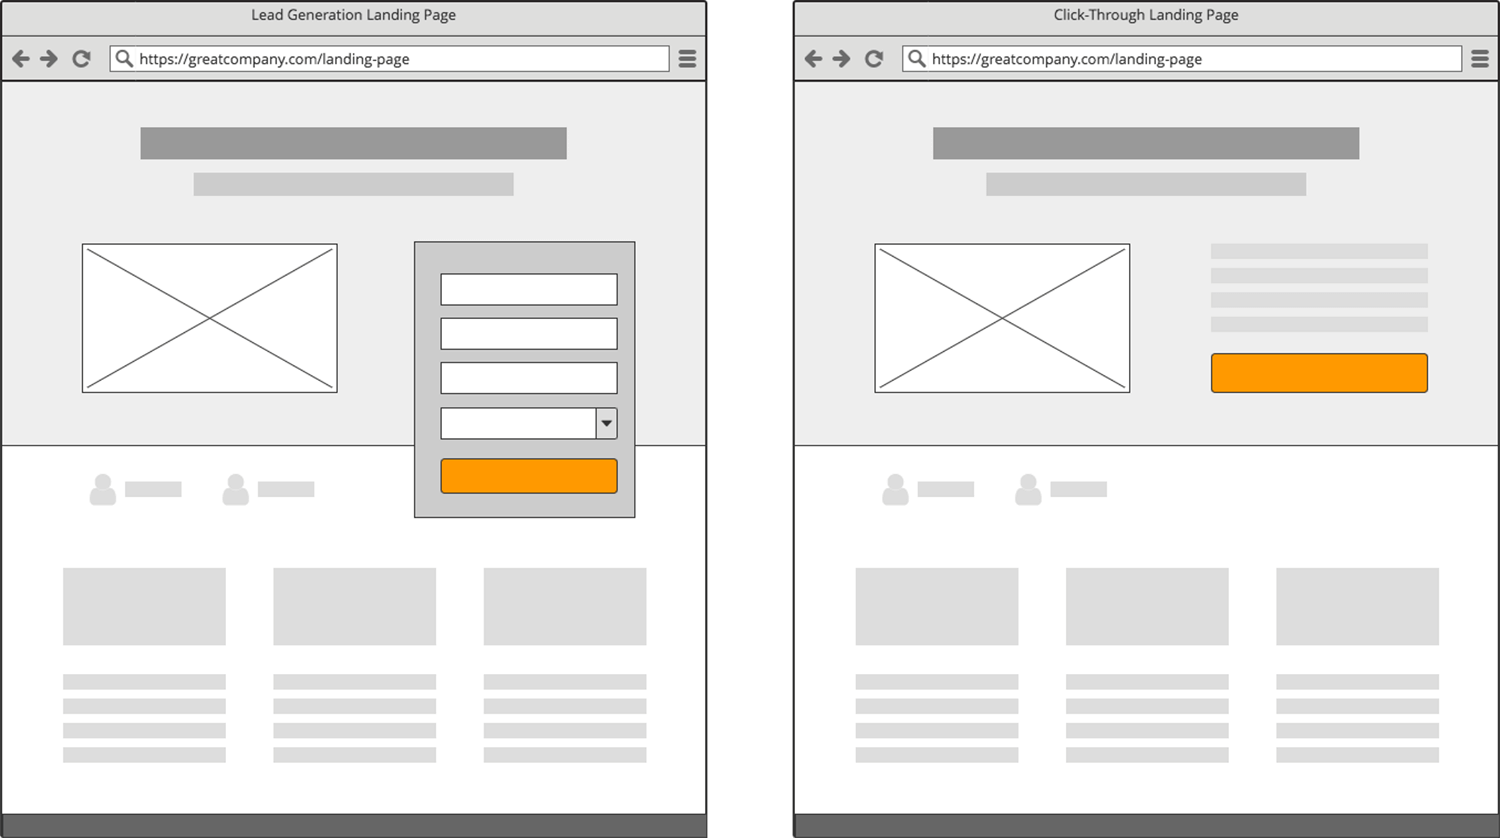 Two different types of landing pages.